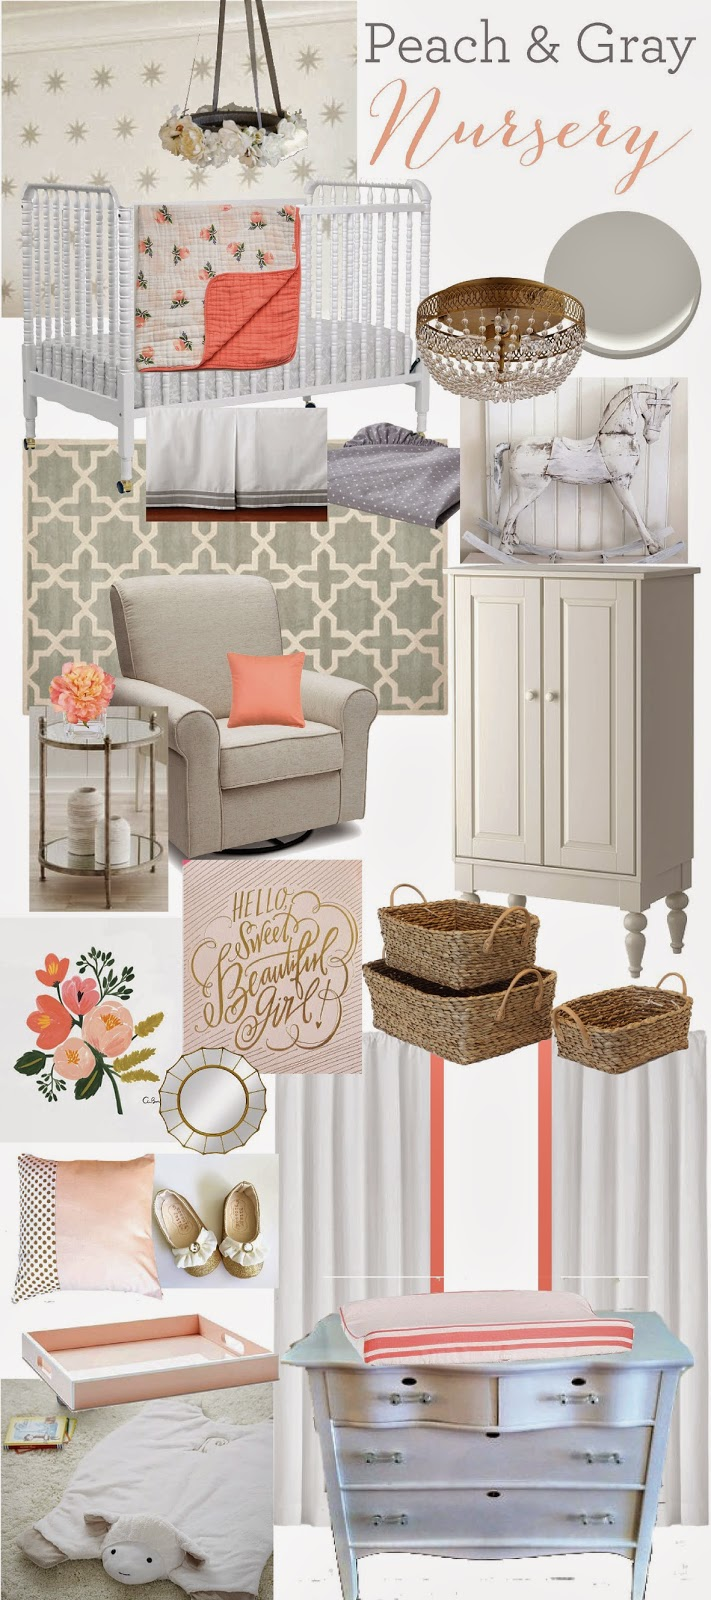 12th and white peach gray nursery our baby girl. Black Bedroom Furniture Sets. Home Design Ideas